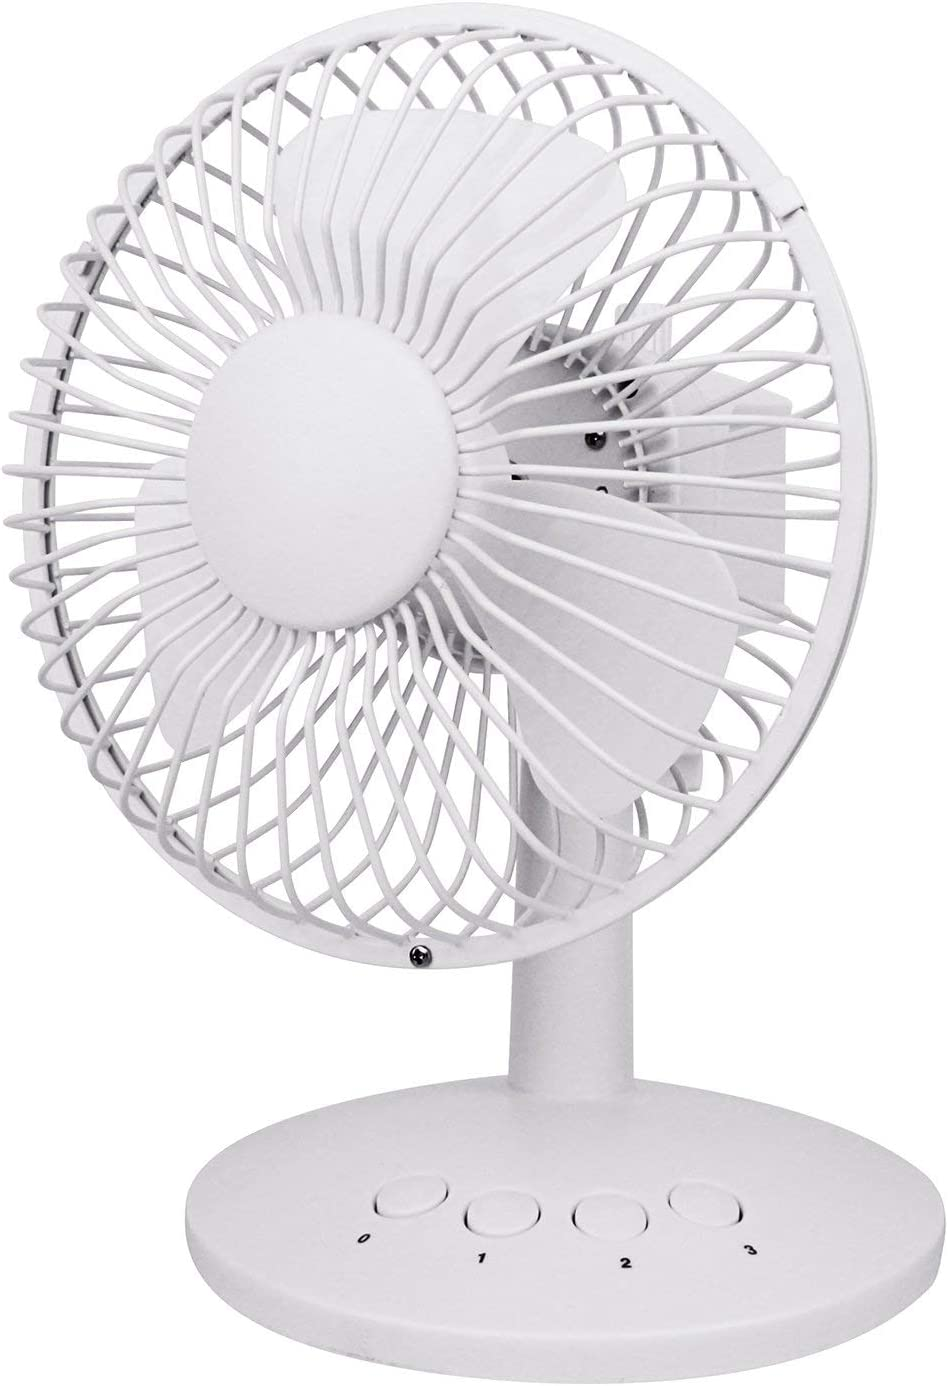 3 Speeds USB Oscillating Fan Portable Table Fan Mini USB Desktop Fan USB Battery Powered Personal Fan Quietness Baby Fan in Home Office Baby Boom Car Camping White